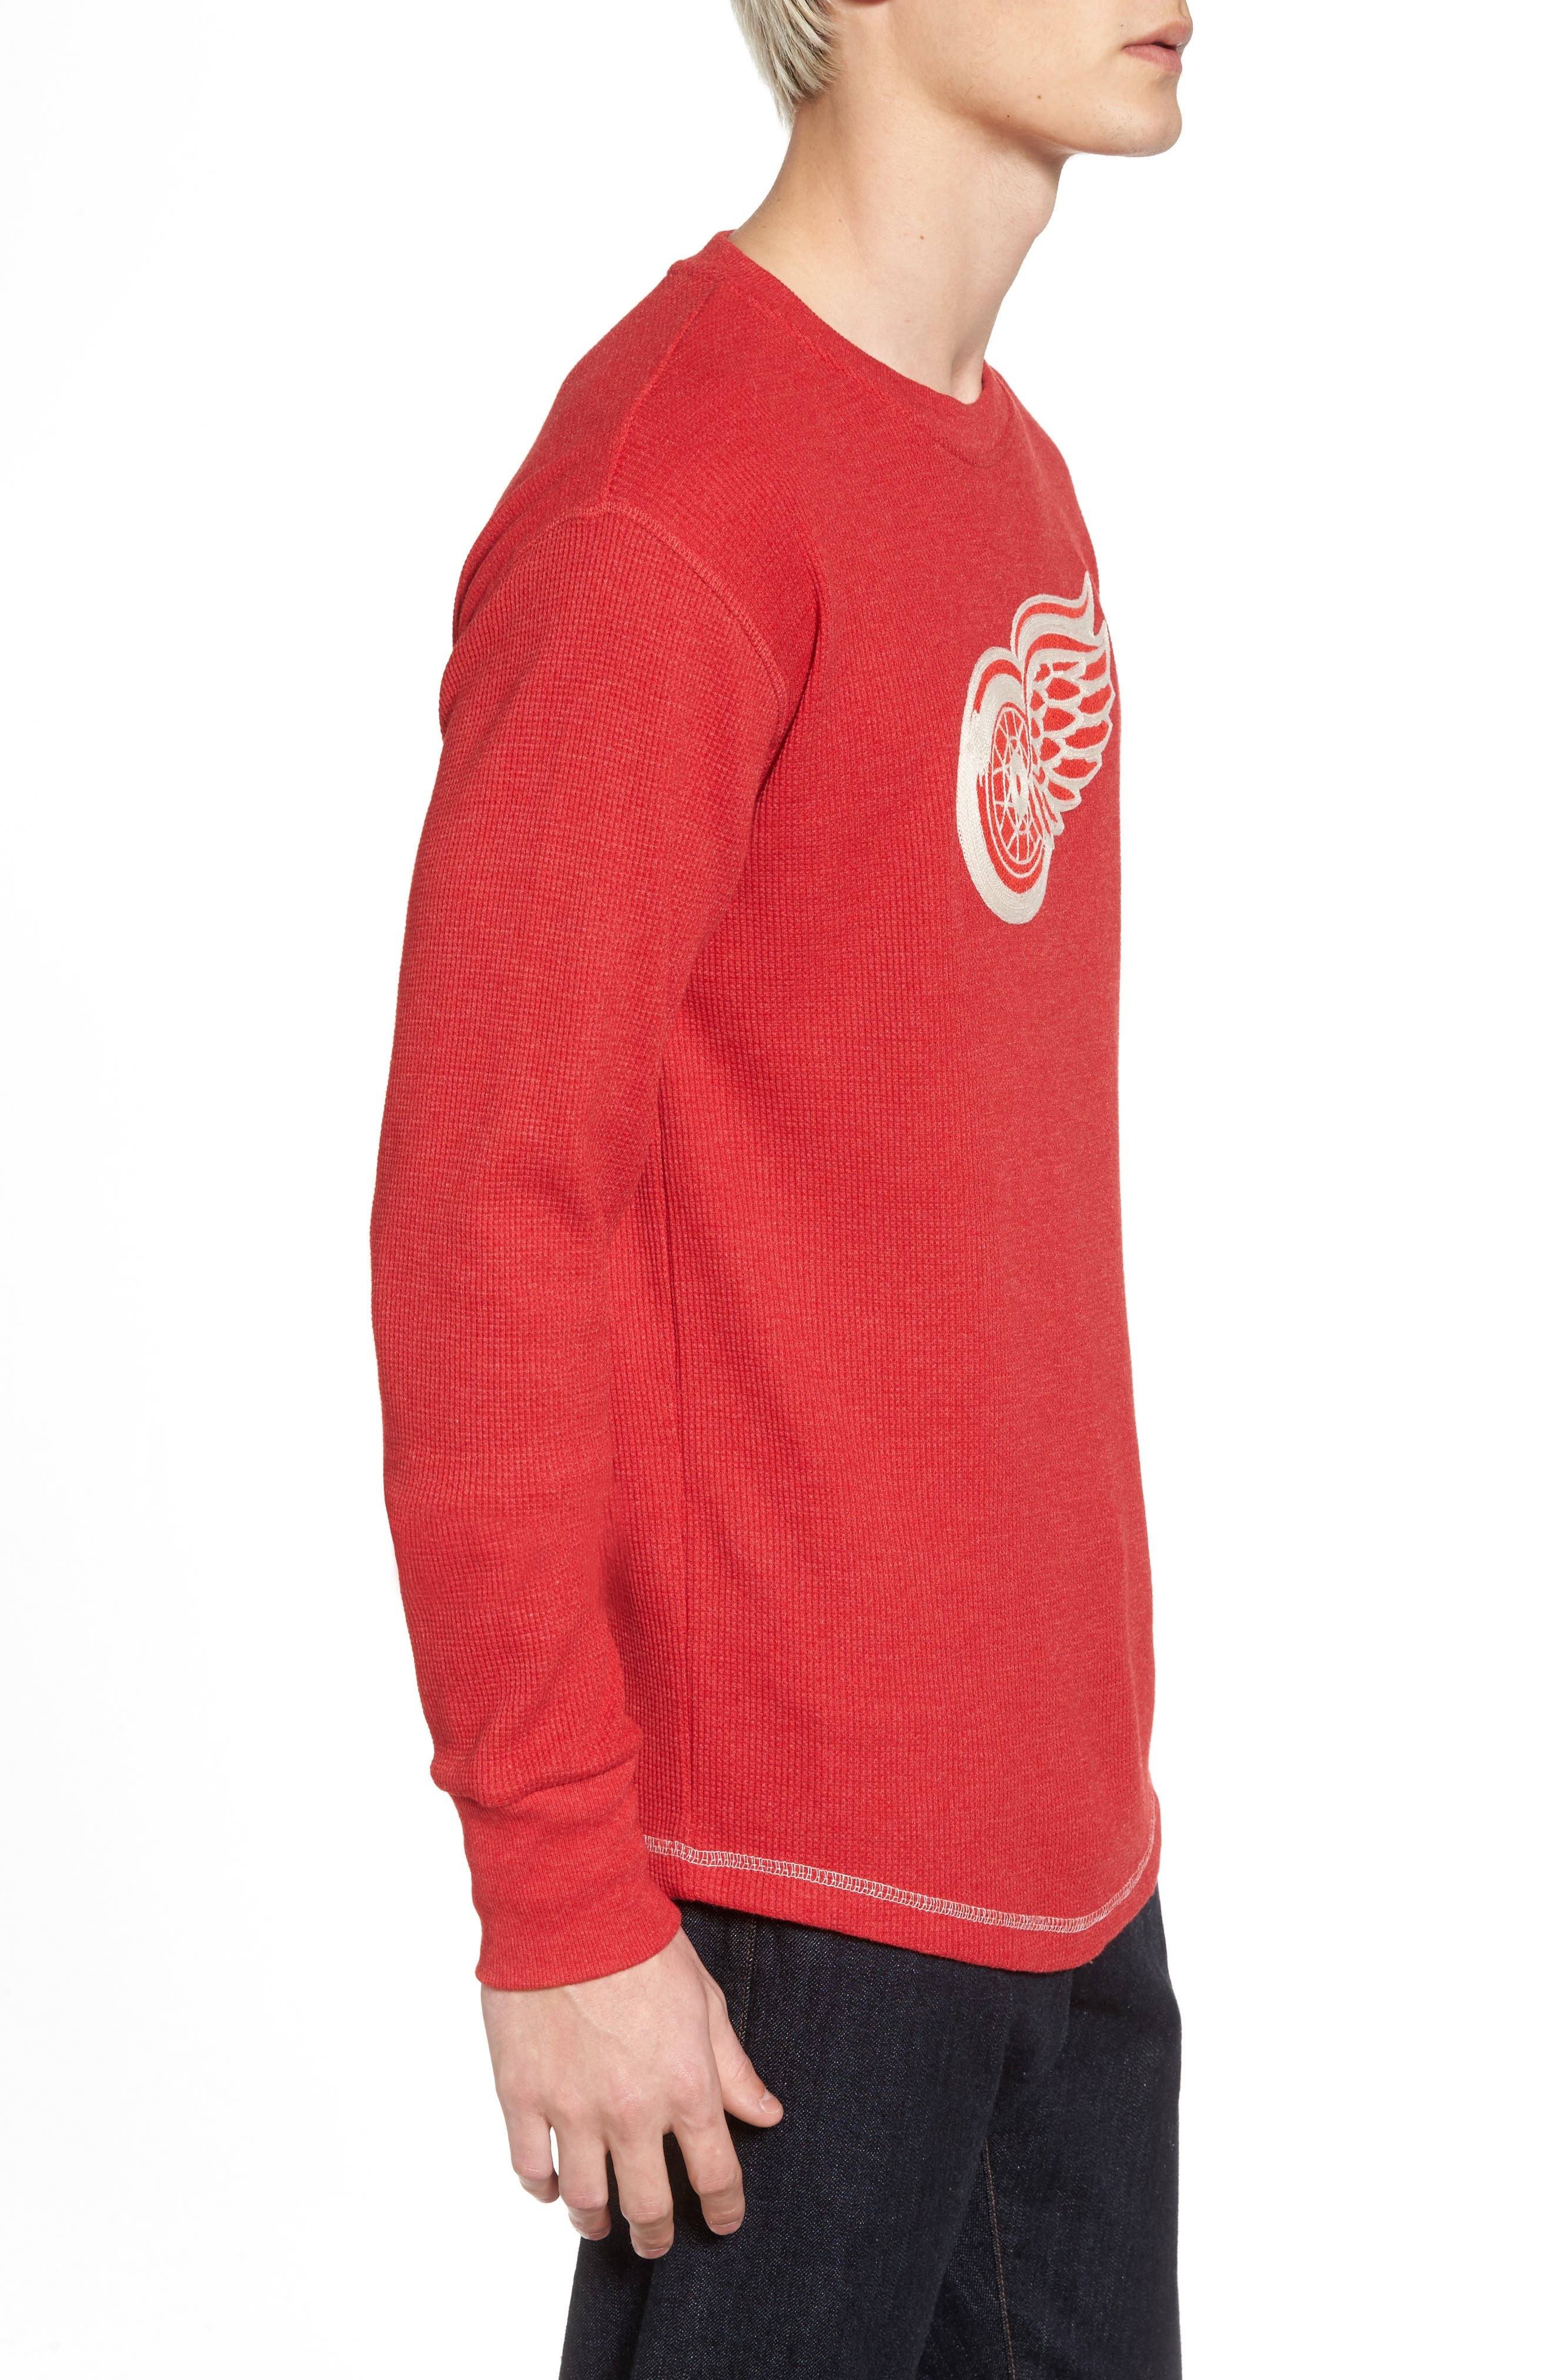 Detroit Red Wings Embroidered Long Sleeve Thermal Shirt,                             Alternate thumbnail 3, color,                             600